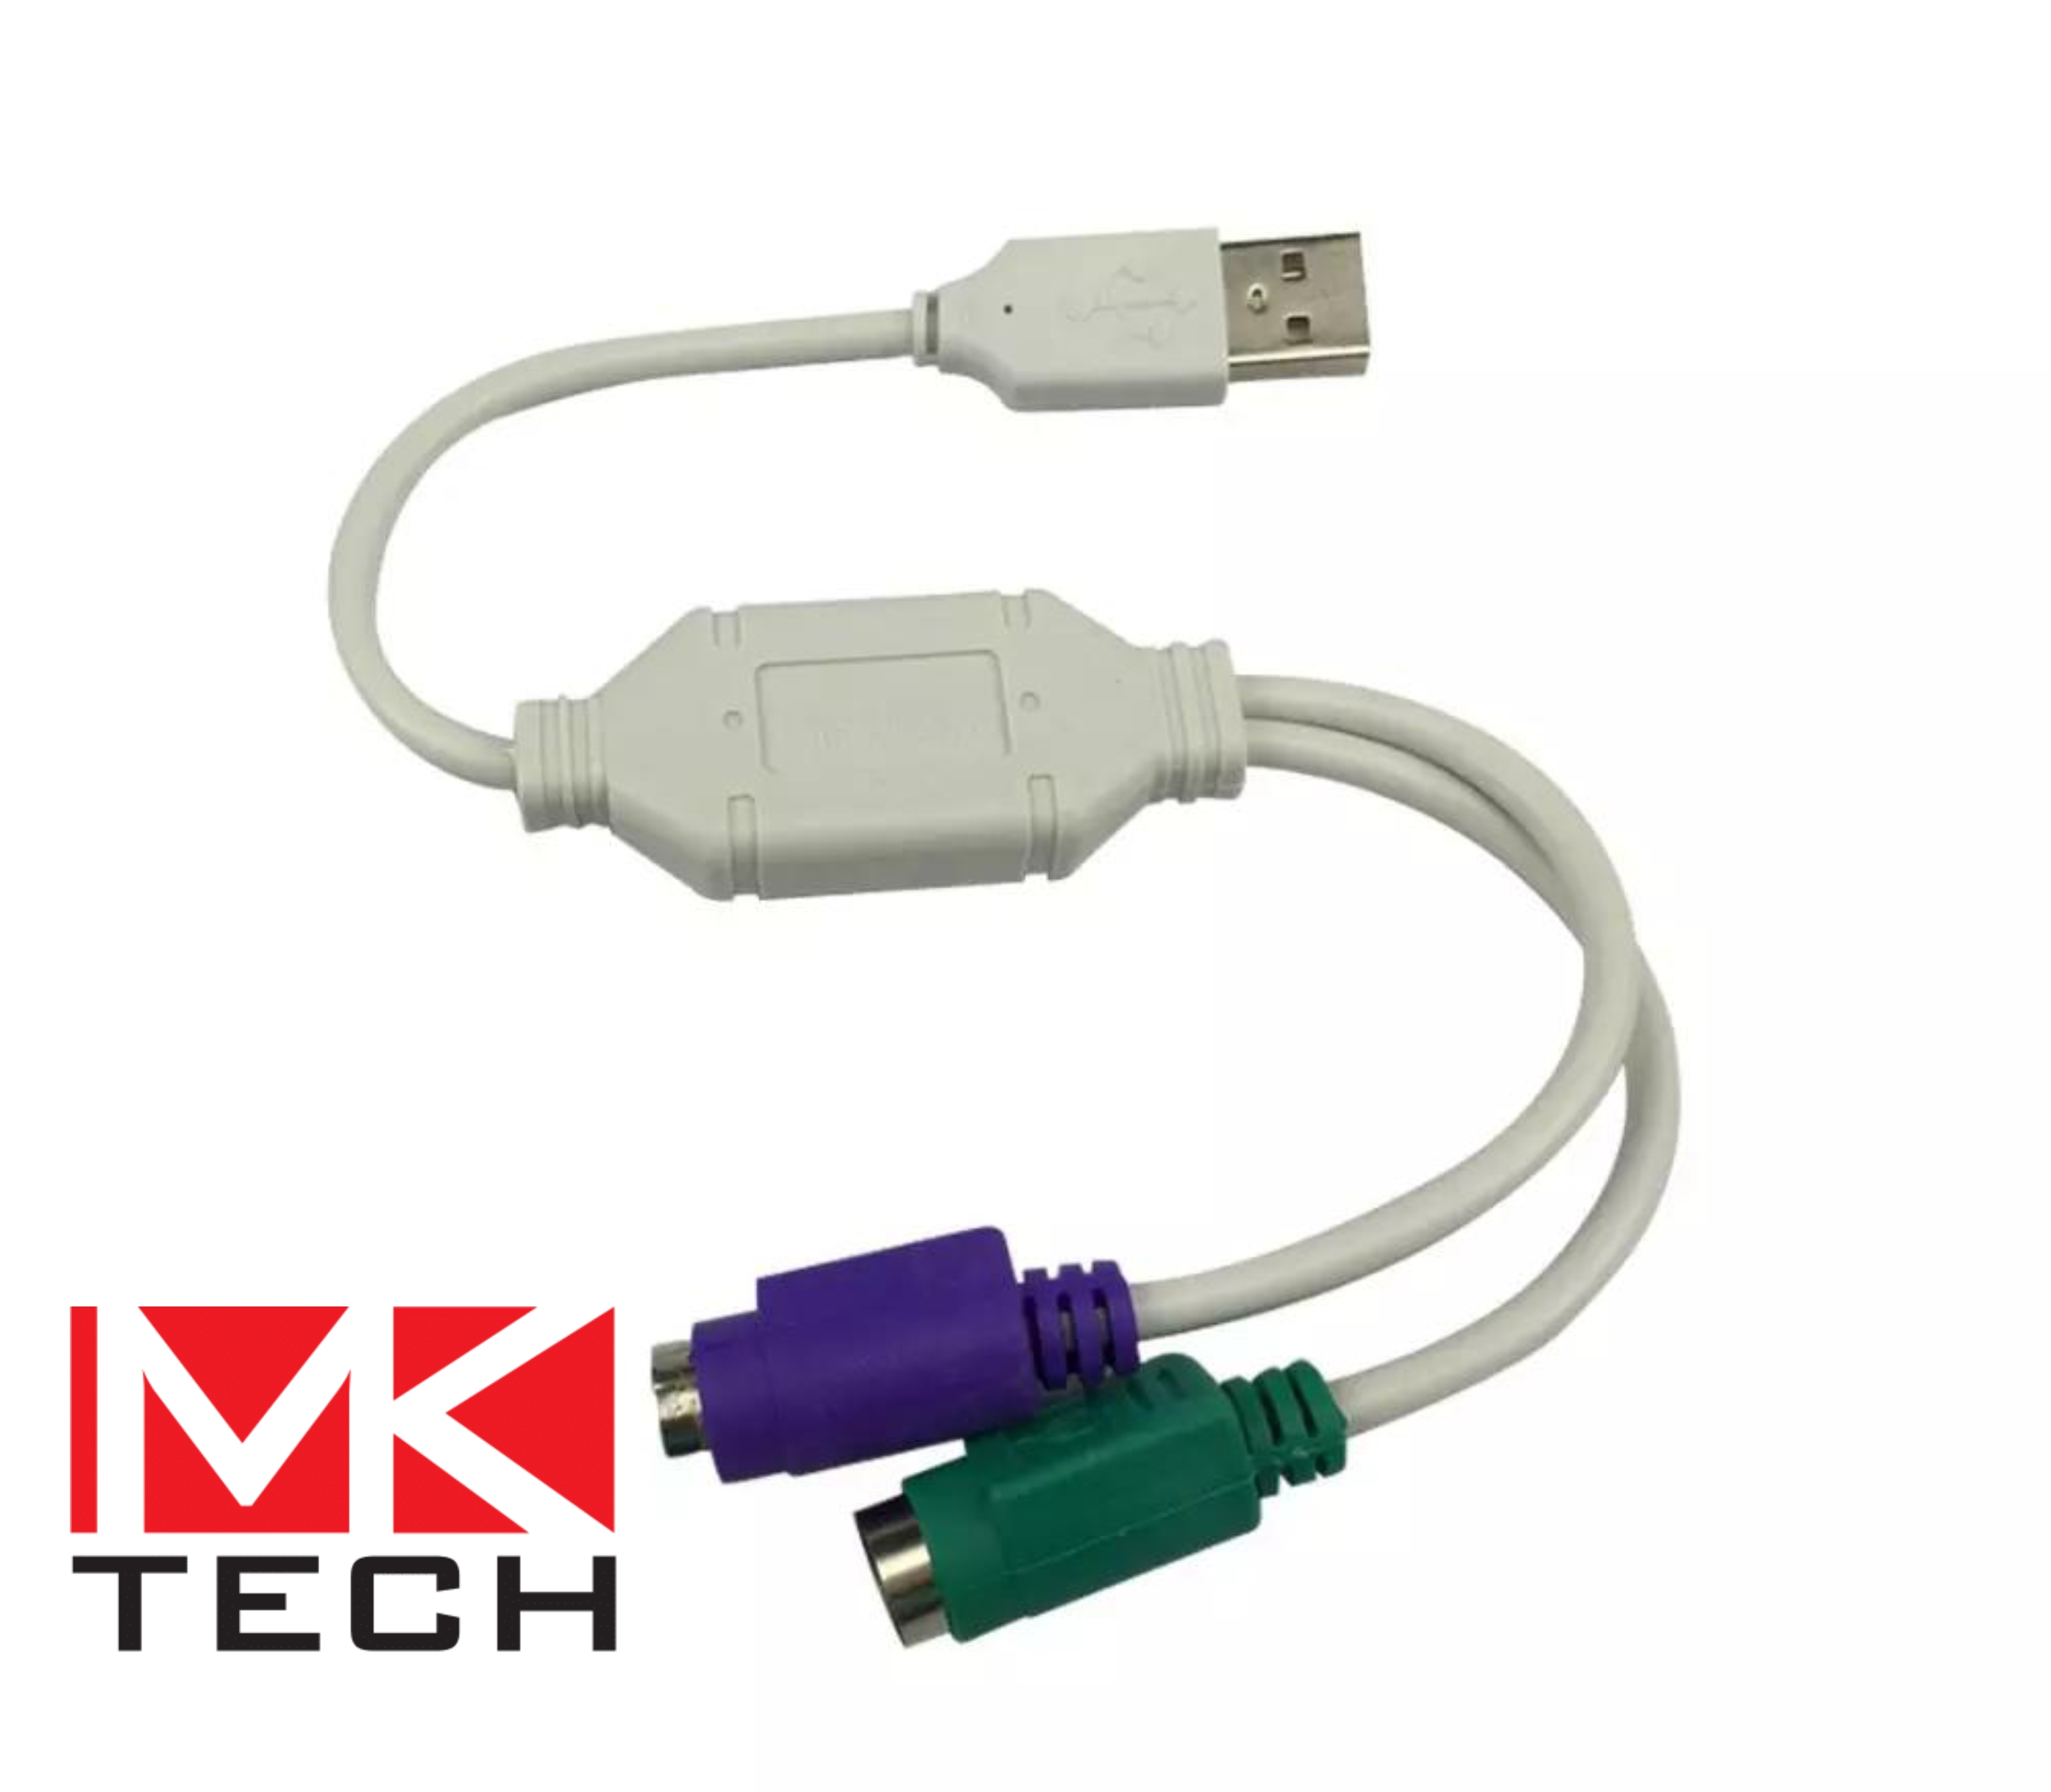 USB to Dual PS/2 Клавиатура и мишка MKTECH